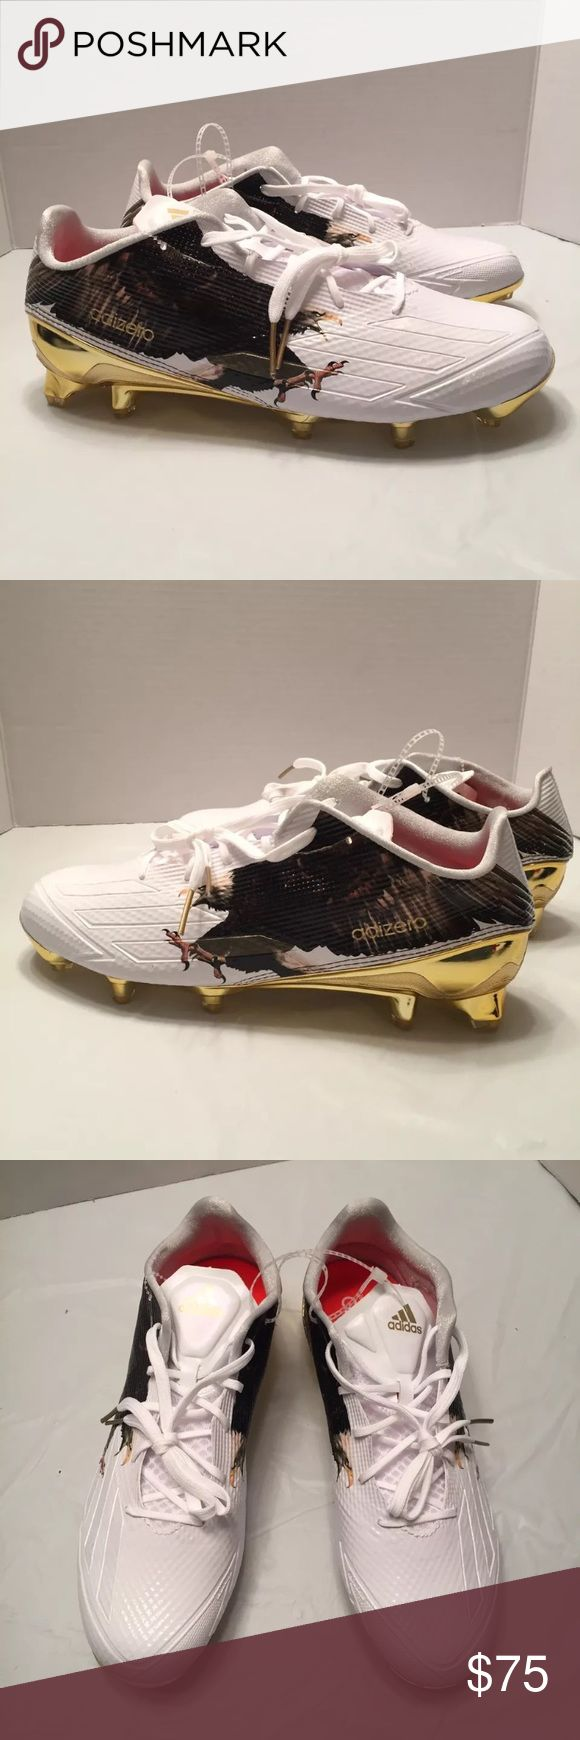 Adidas Adizero Size 10 Football Cleats Eagle White Adidas Adizero Men Size 10 Football Cleats Eagle White Gold Black Shoes B49350 New without Box Gold, white and black with eagle Size 10 114278750 adidas Shoes Athletic Shoes